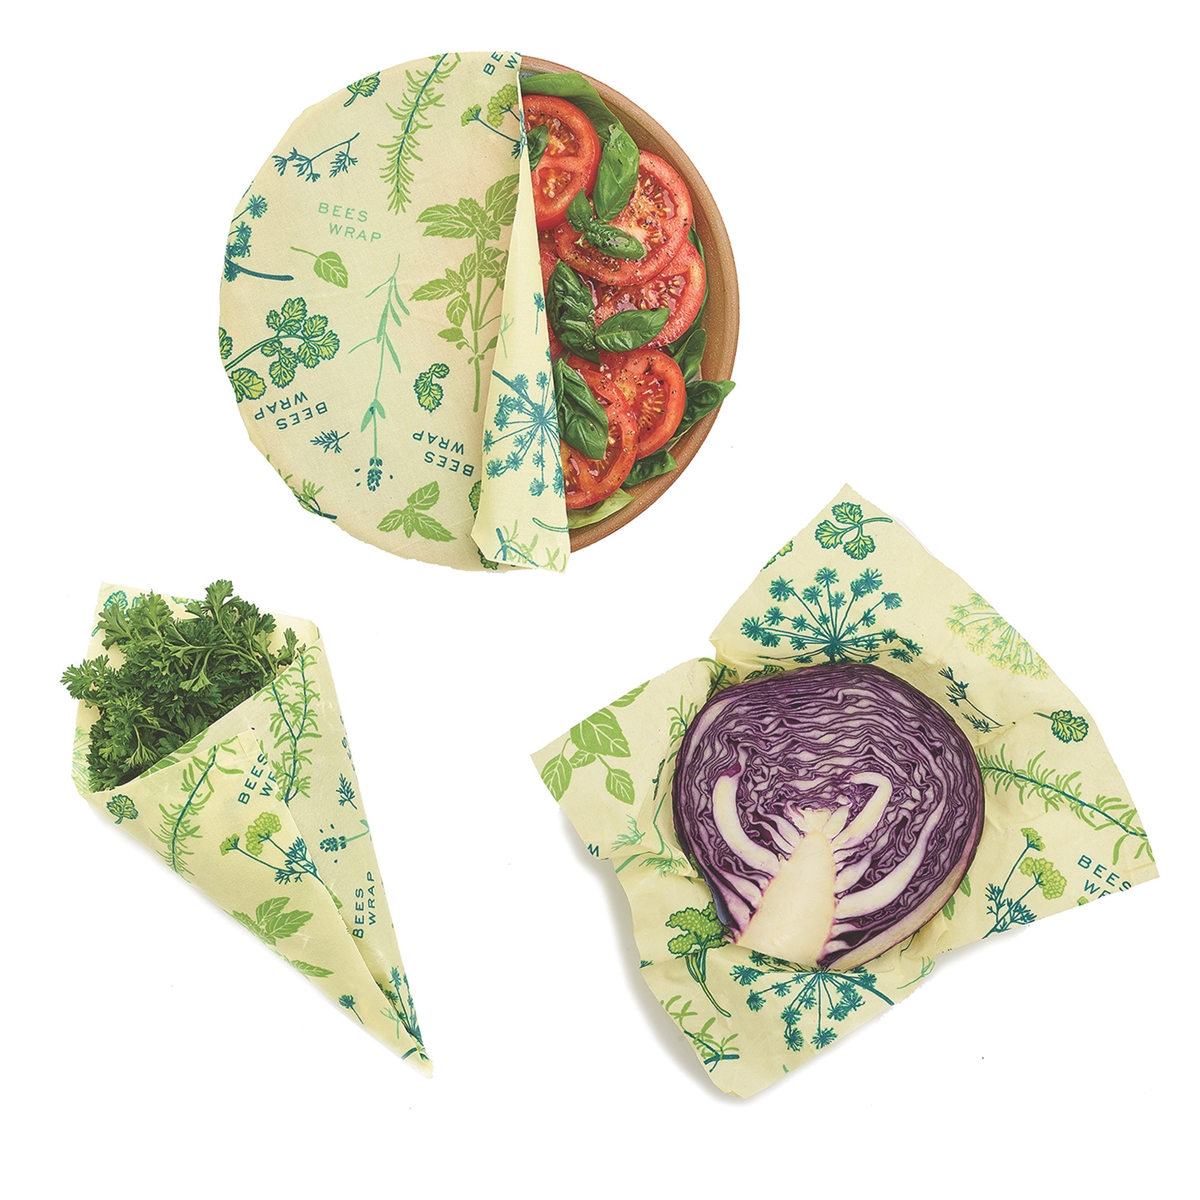 Vegan Herb Garden Reusable Food Wrap